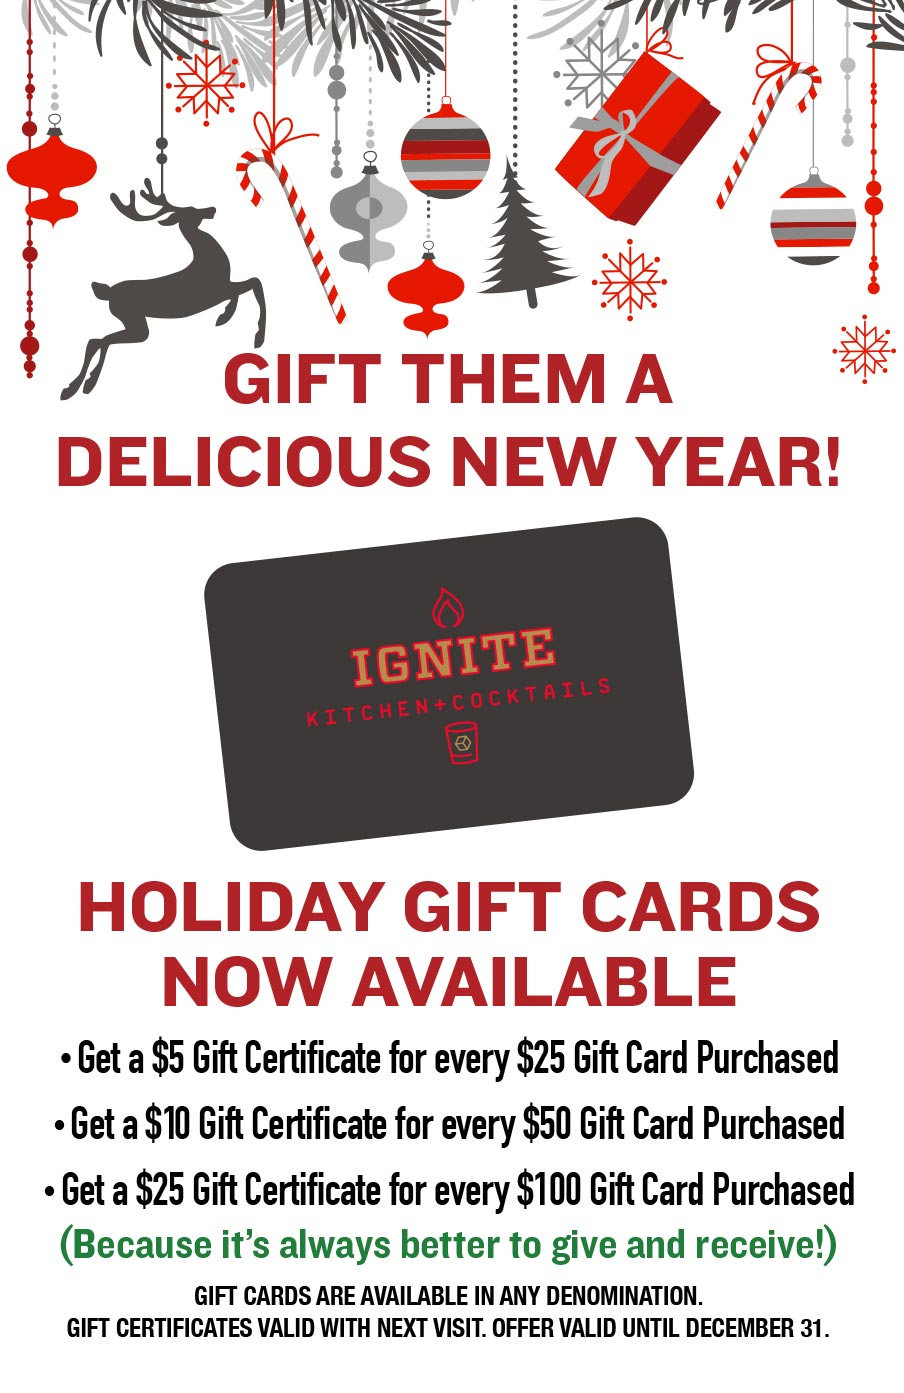 Gift Cards for the Holidays!